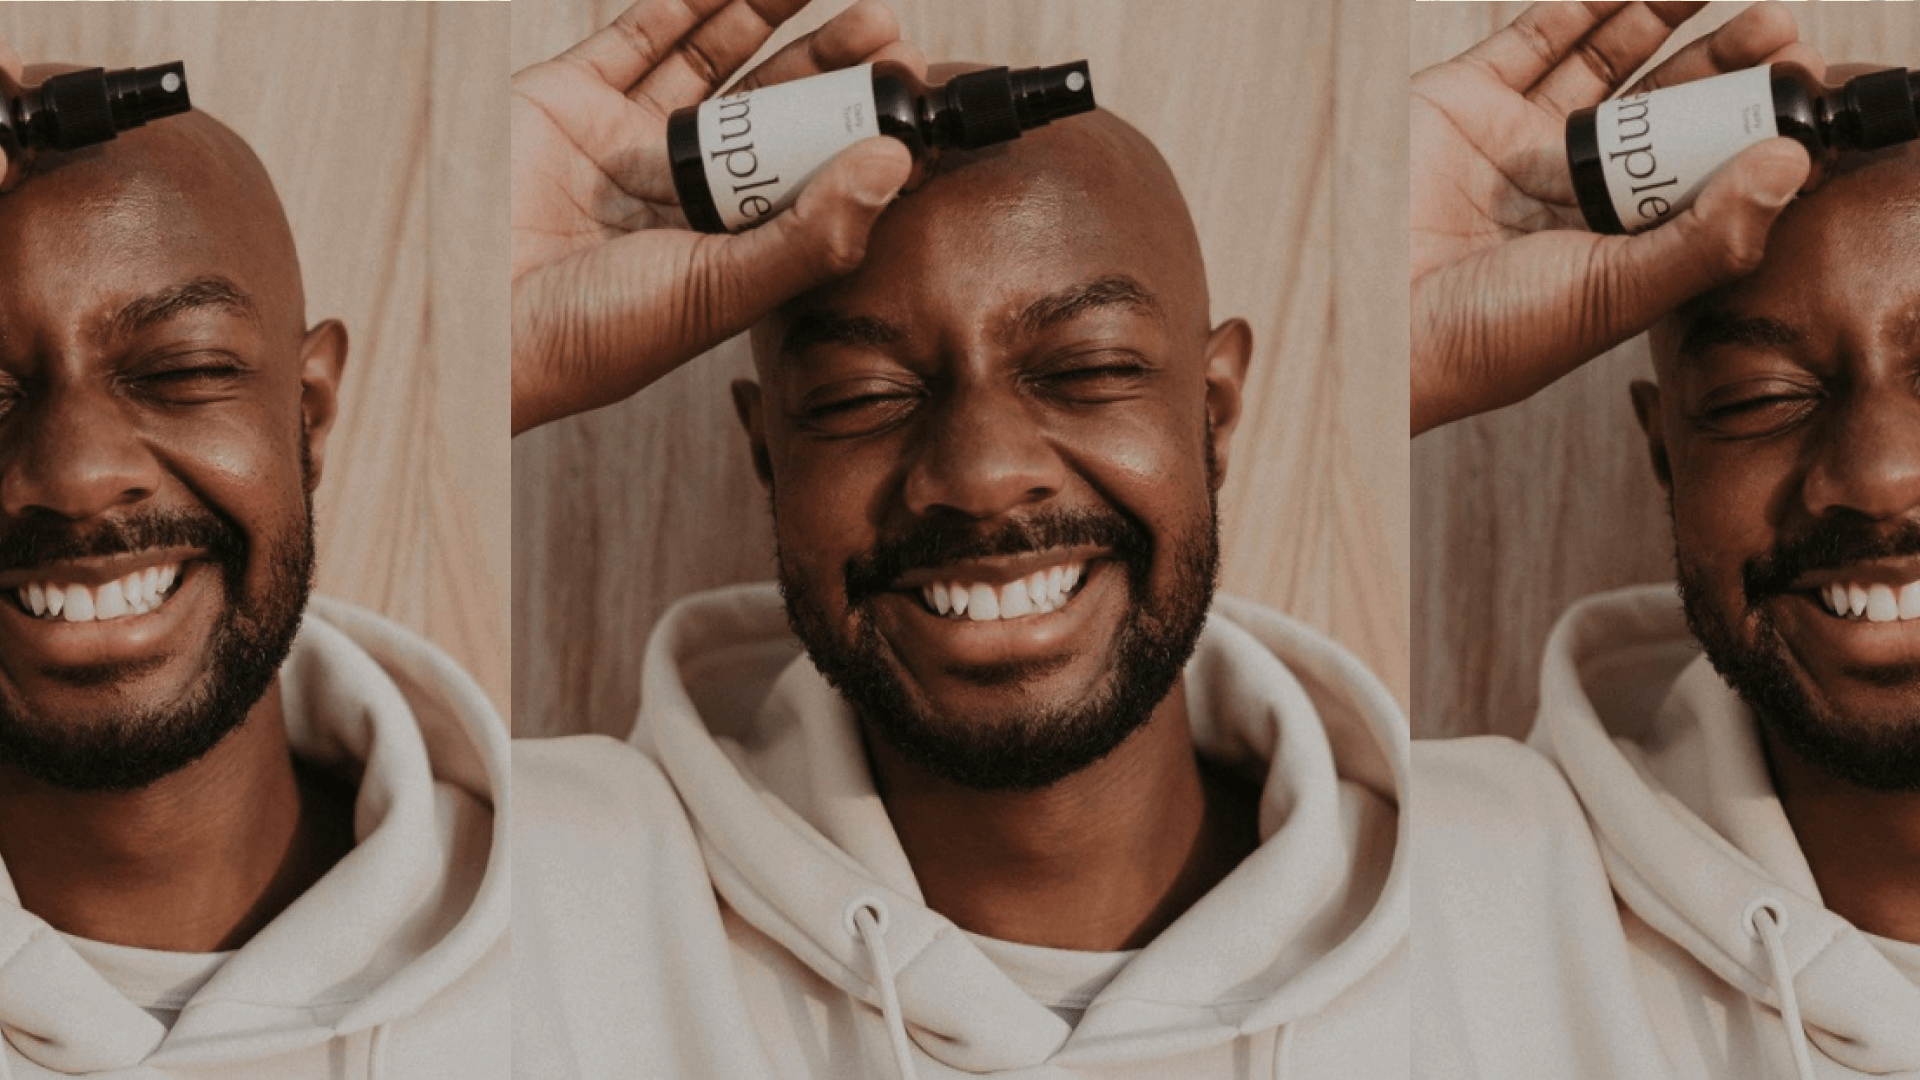 Meeting Richie Dawes, co-founder of Temple:A skincare & wellness company targeting men of colour.